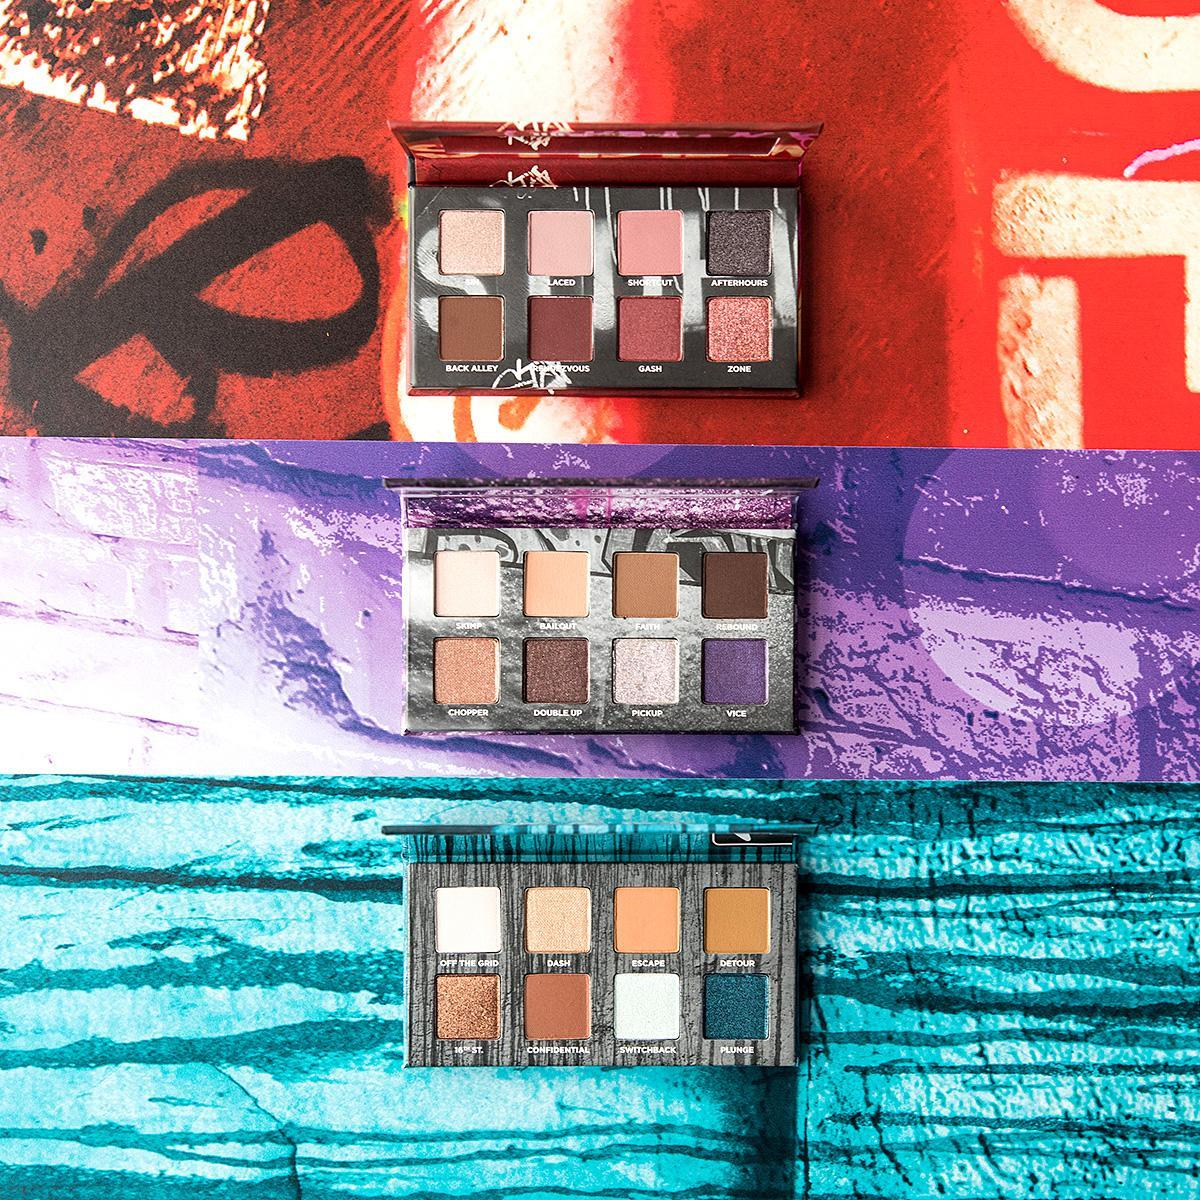 Think of our On the Run Mini Palettes as quick-and-dirty getaways for when you need a major beauty escape. Bailout, Detour + Shortcut are equipped with 4 mattes and 4 shimmers, so you'll be able to whip out the one you want on the go 😉 AVAILABLE NOW @Sephora mobile #UrbanDecay